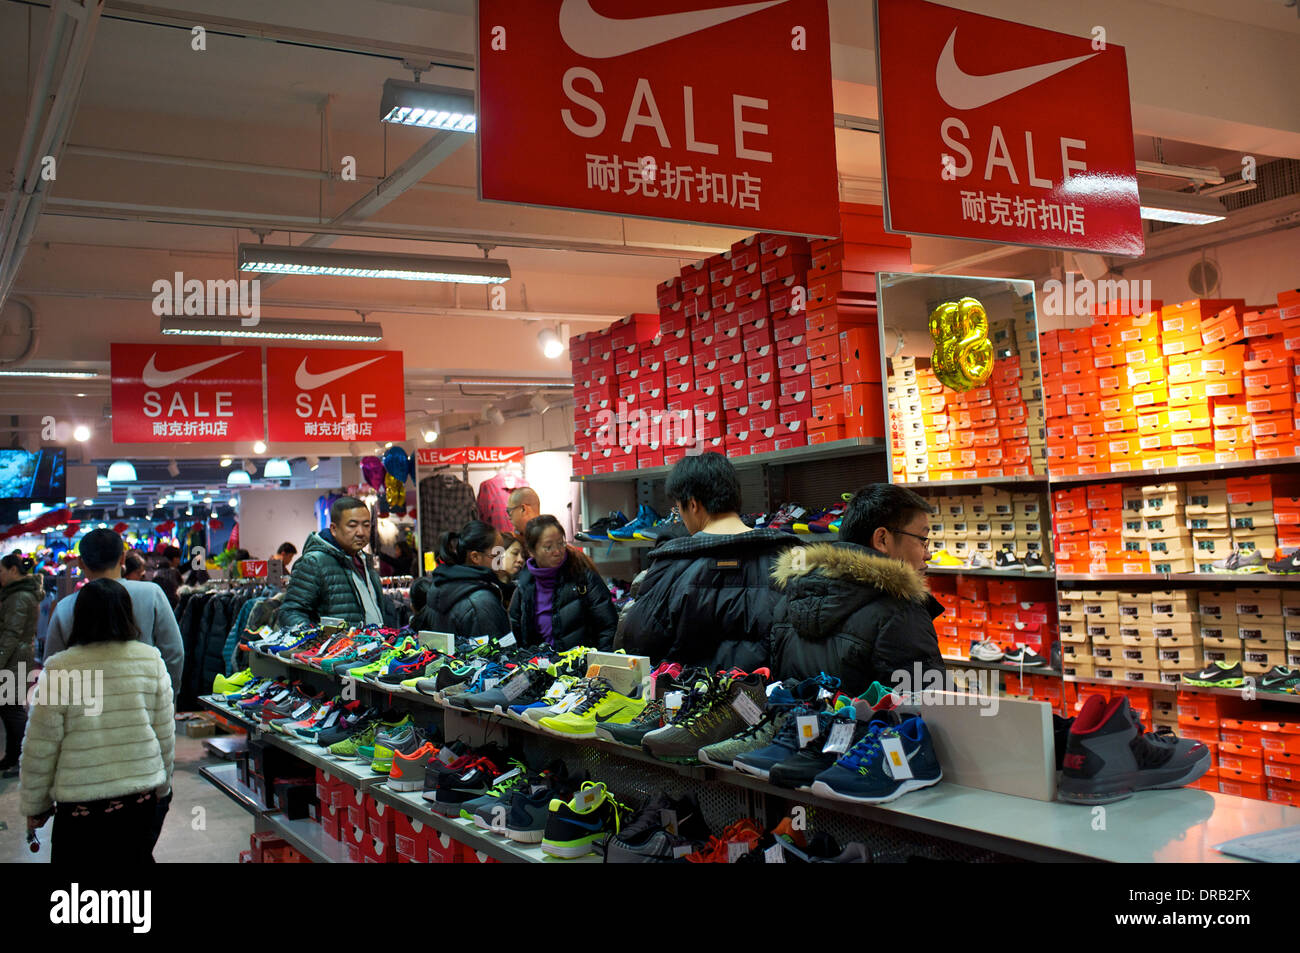 A Nike store in Beijing, China. 2014